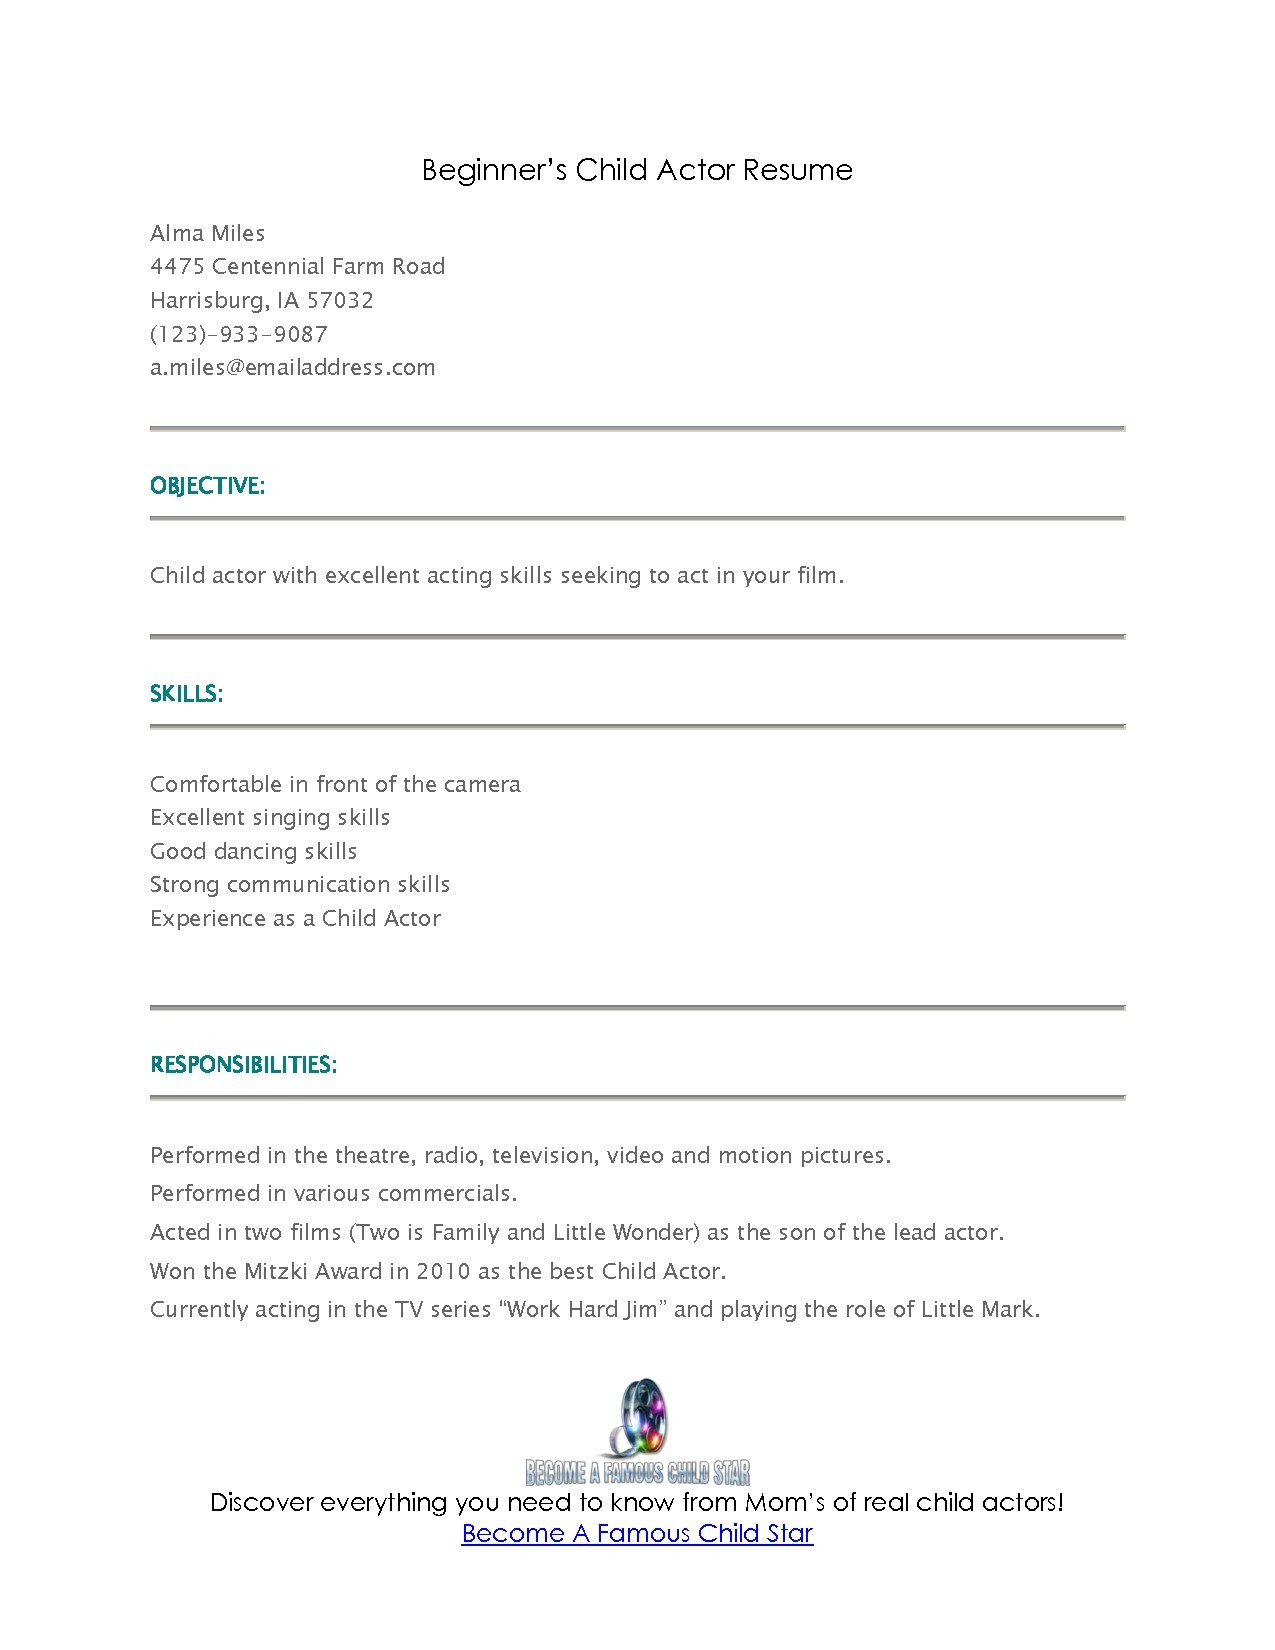 Beginner Acting Resume Template - 23 Beginners Resume Template